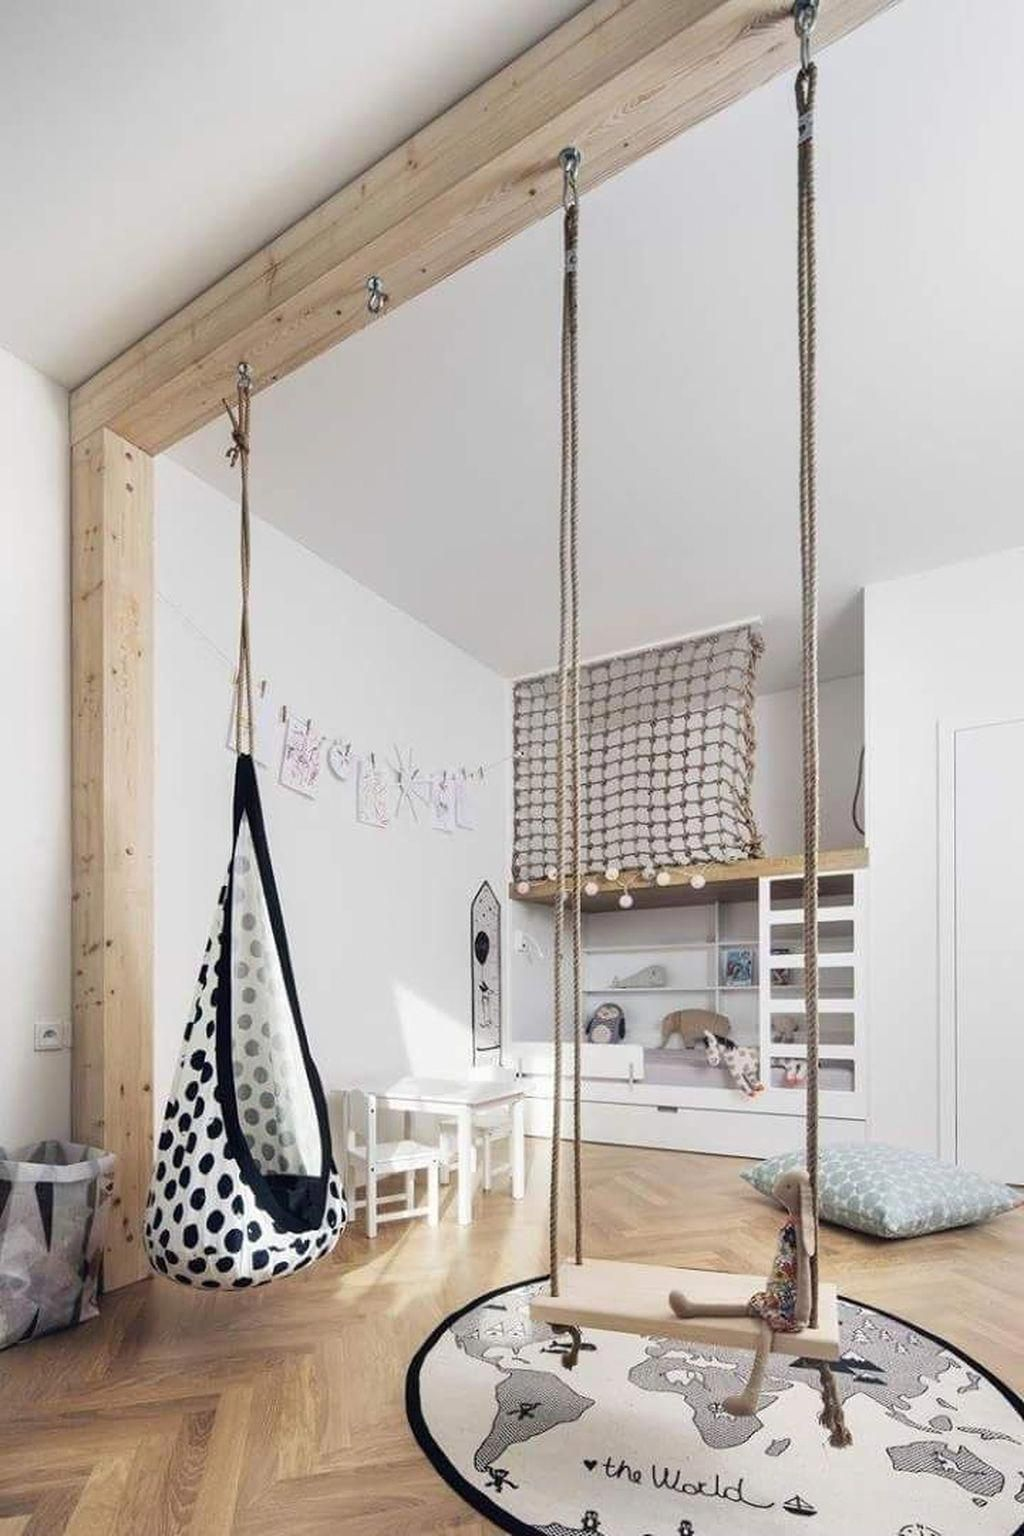 50 Inspiring Kids Room Design Ideas - PIMPHOMEE #playroomfurniture 50 Inspiring Kids Room Design Ideas #kidsbedroom